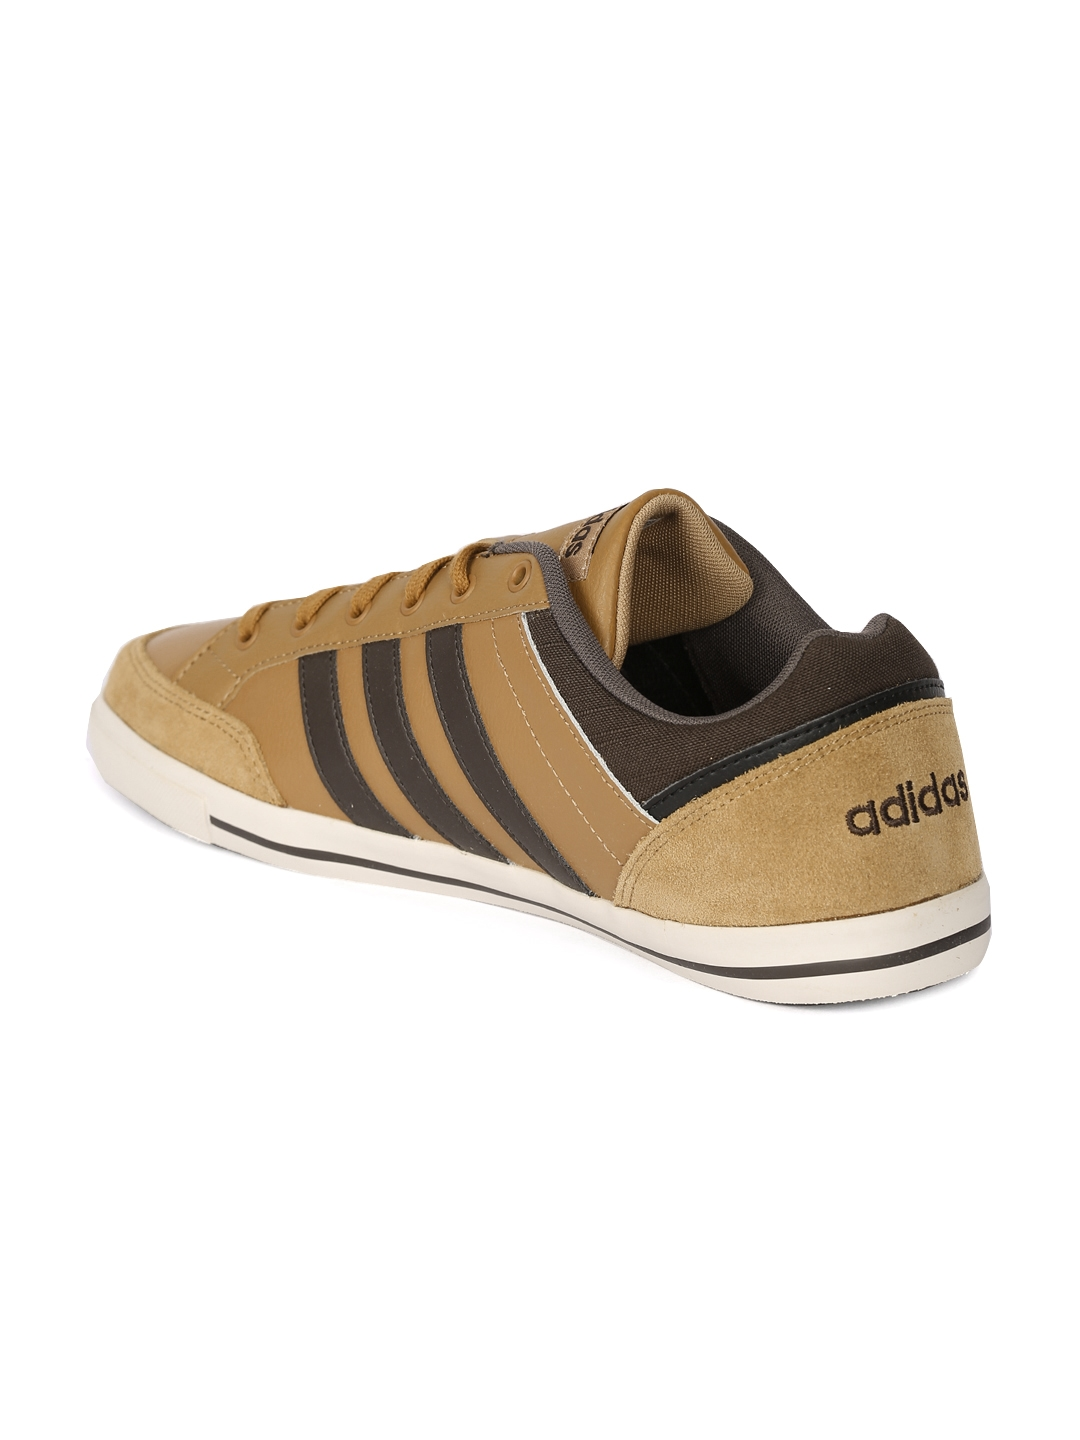 new products da731 e50a3 netherlands adidas neo caflaire tan sneakers b0539 0adda where can i buy  image. more colours. adidas neo 0769c ed8aa